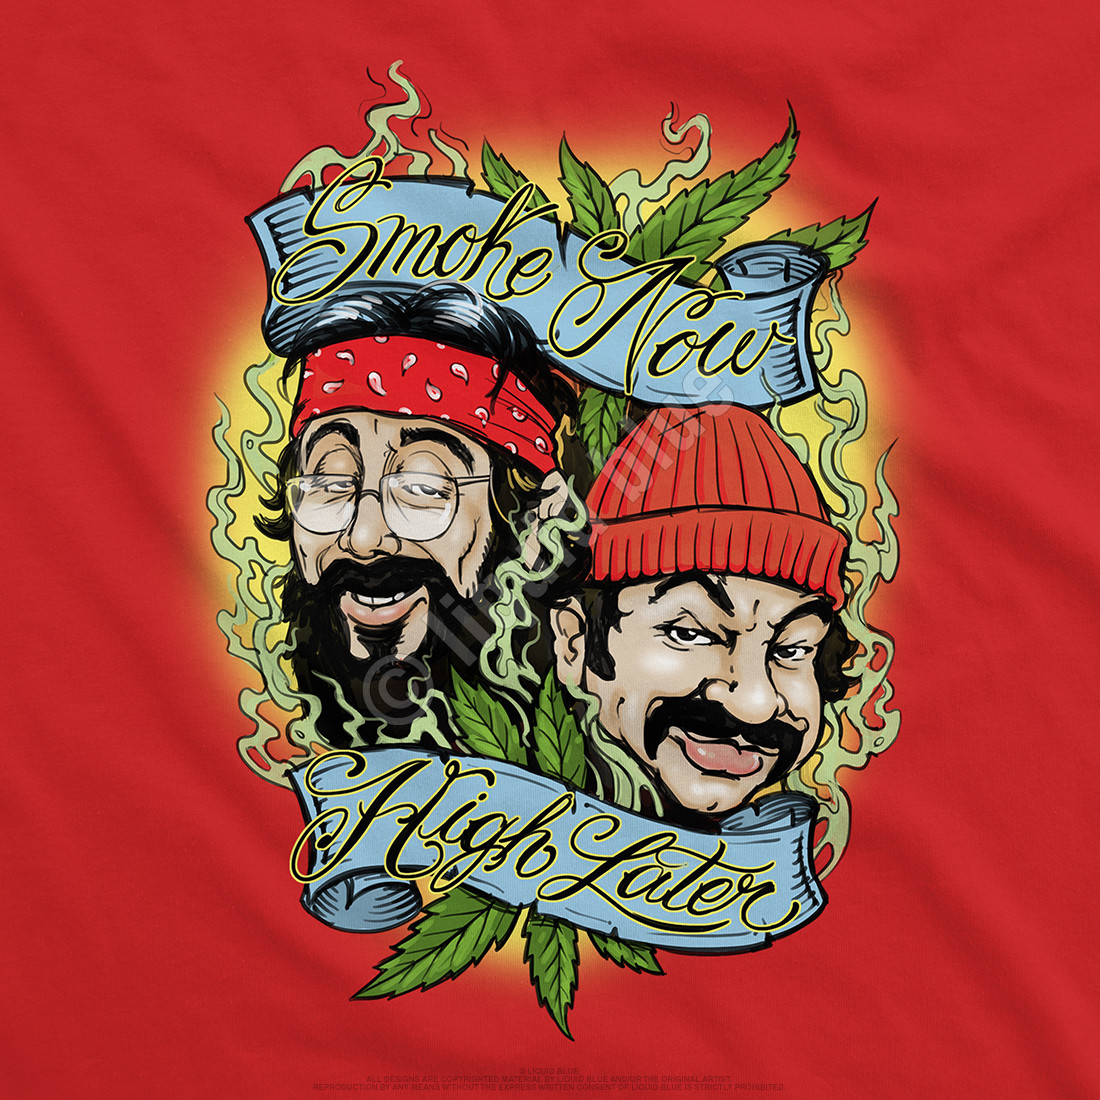 Smoke Now High Later Red T-Shirt